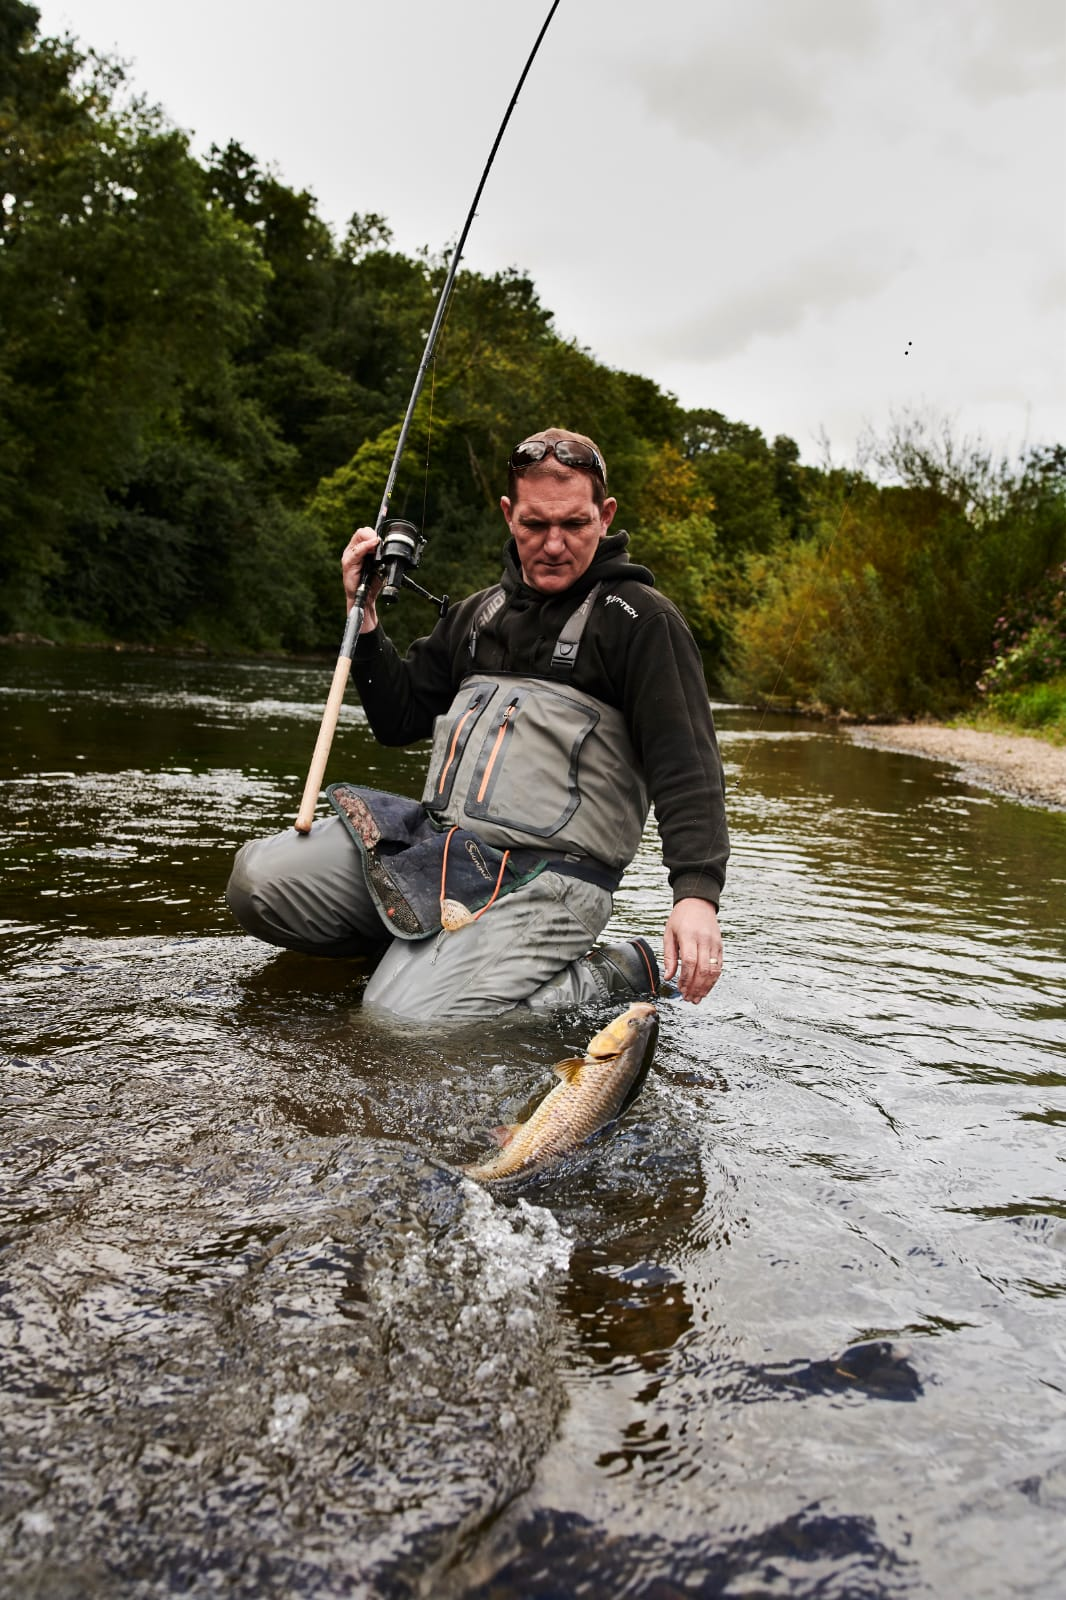 Welcome To The Blog - Our River Wye Adventures